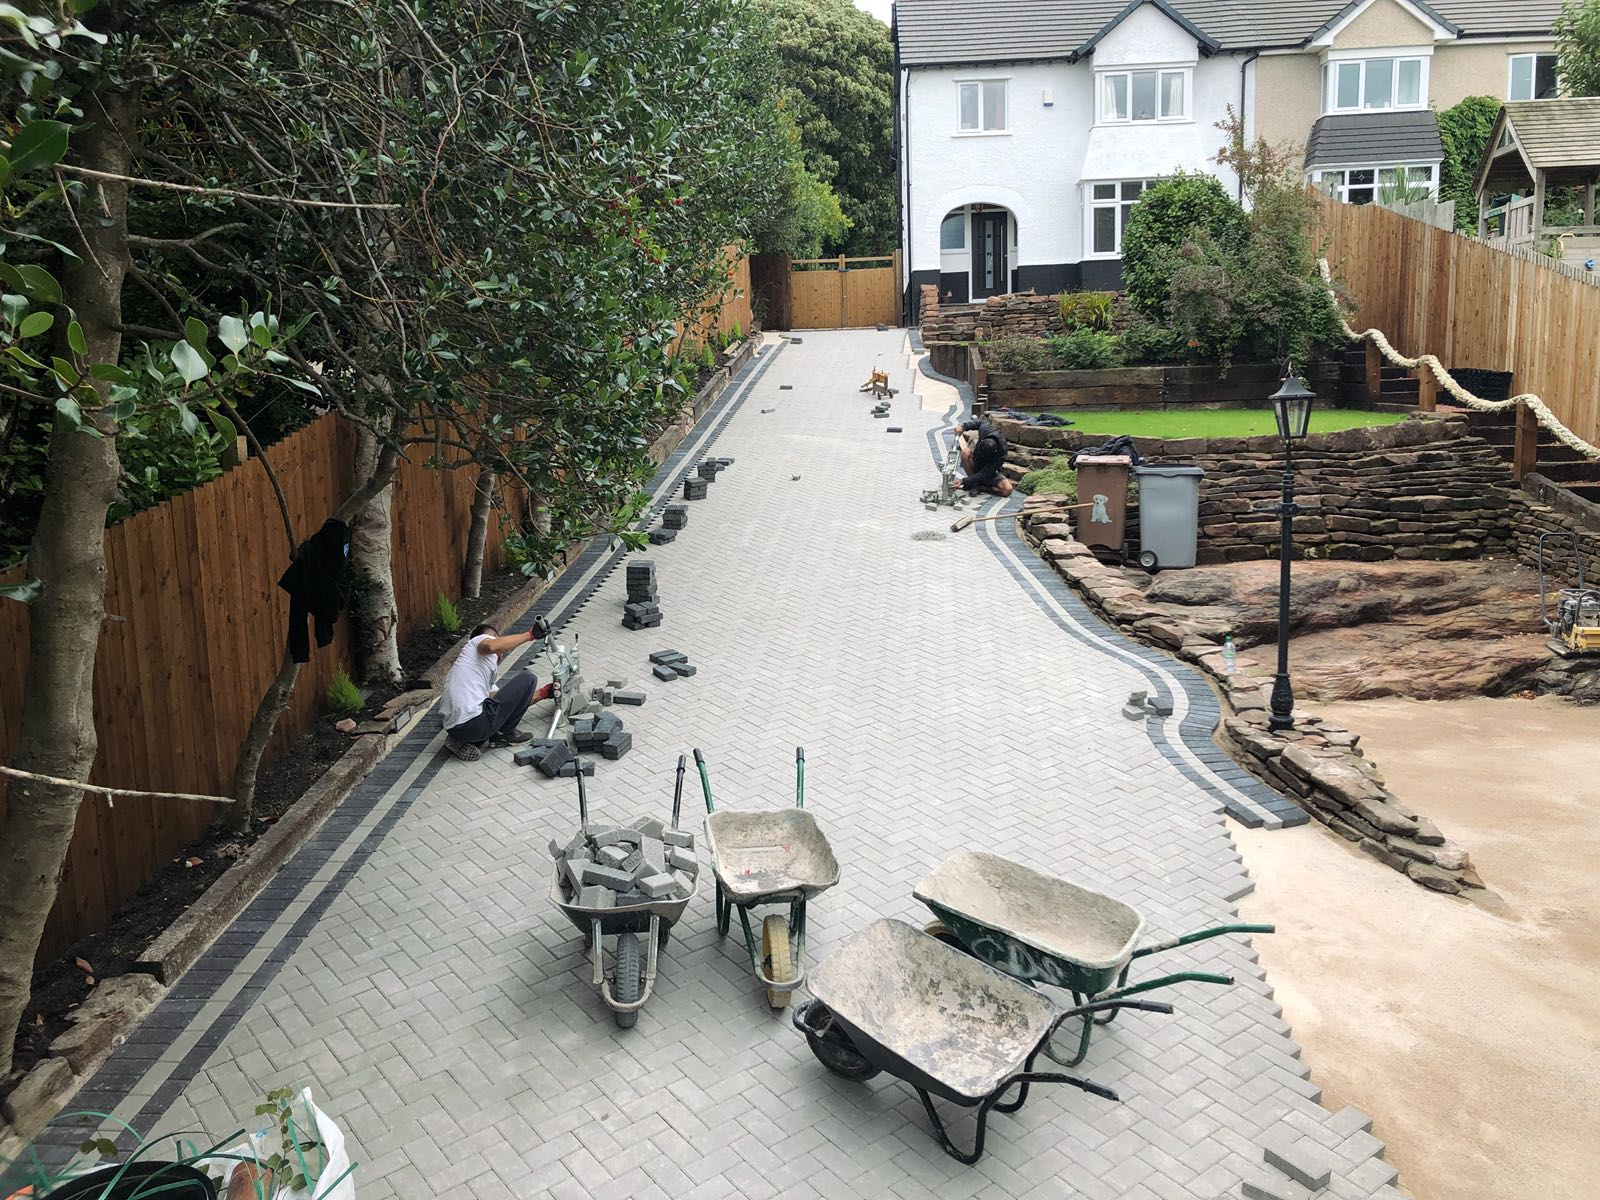 G D Quality paving laying a block driveway on The Wirral near Liverpool.